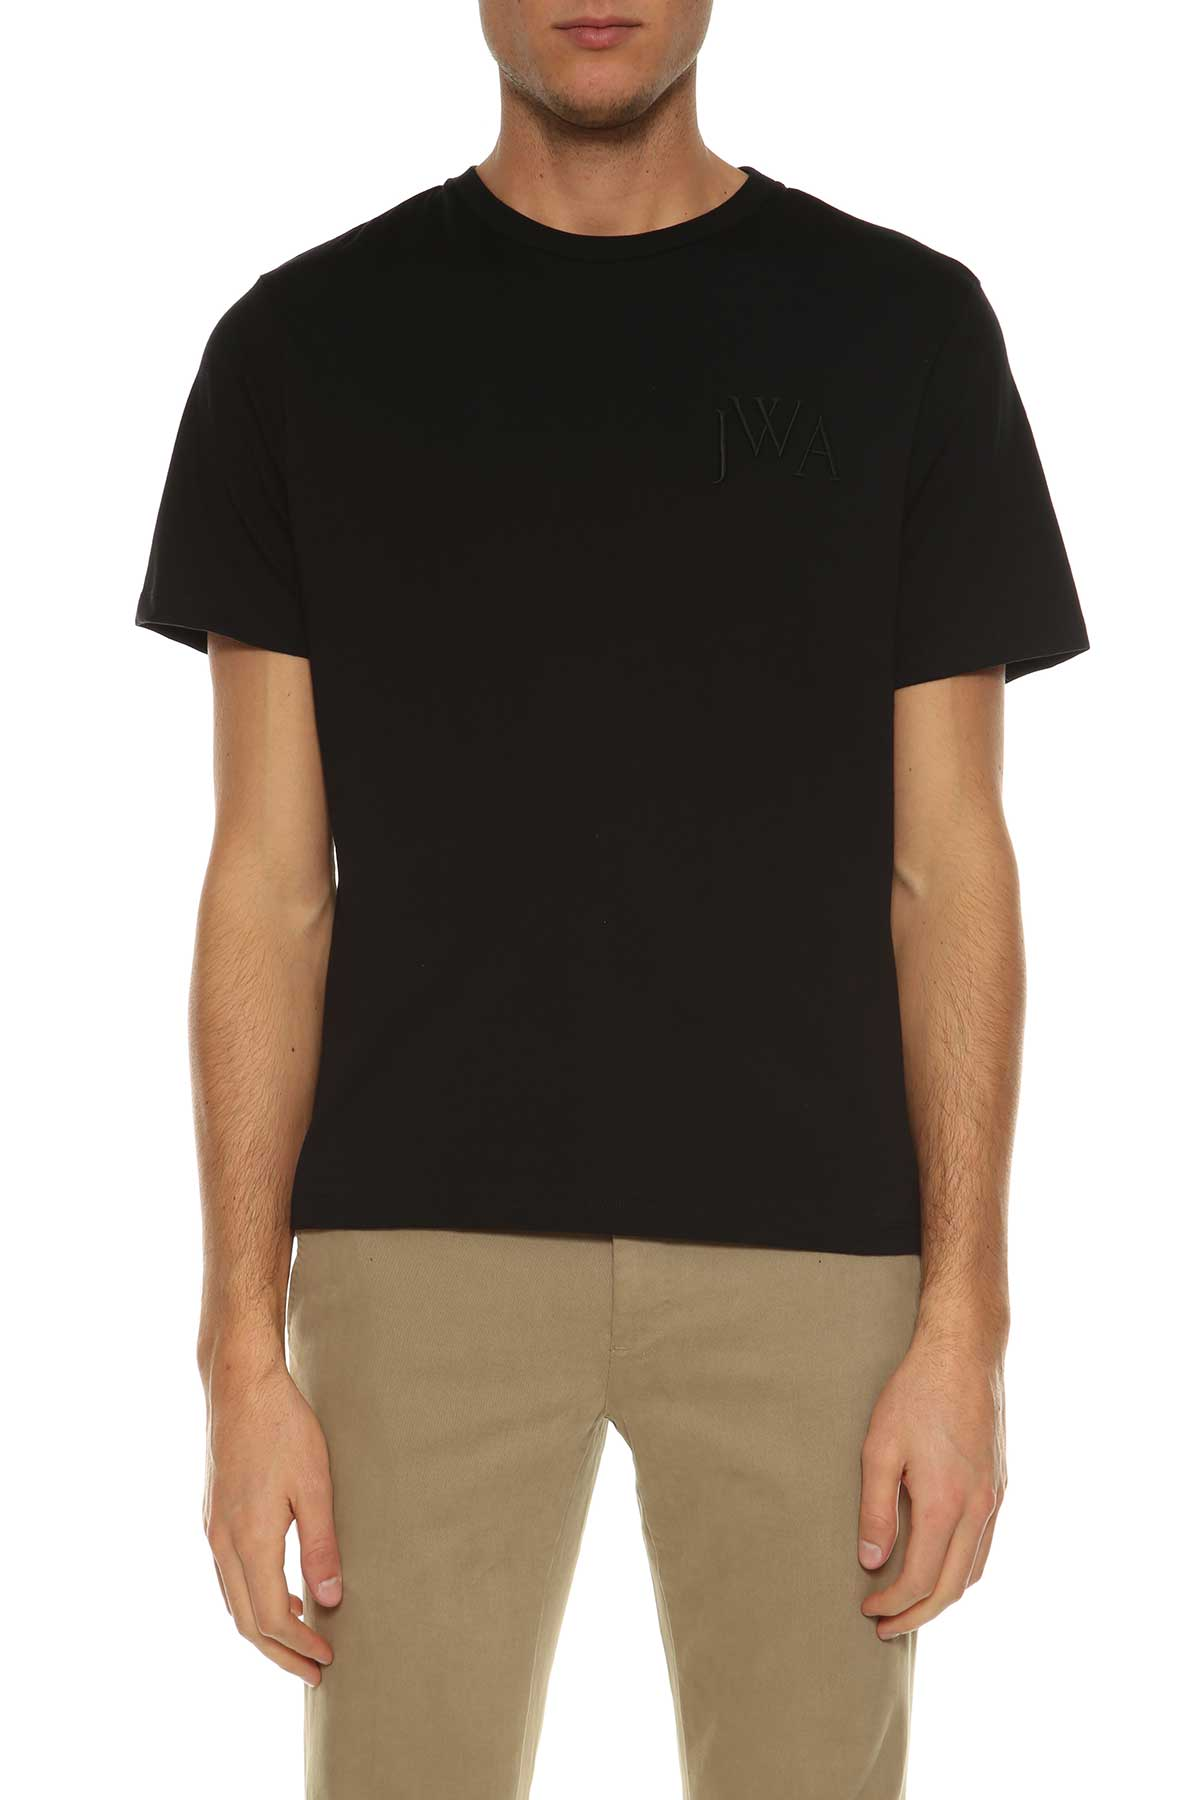 J.w. Anderson Embroidered T-shirt